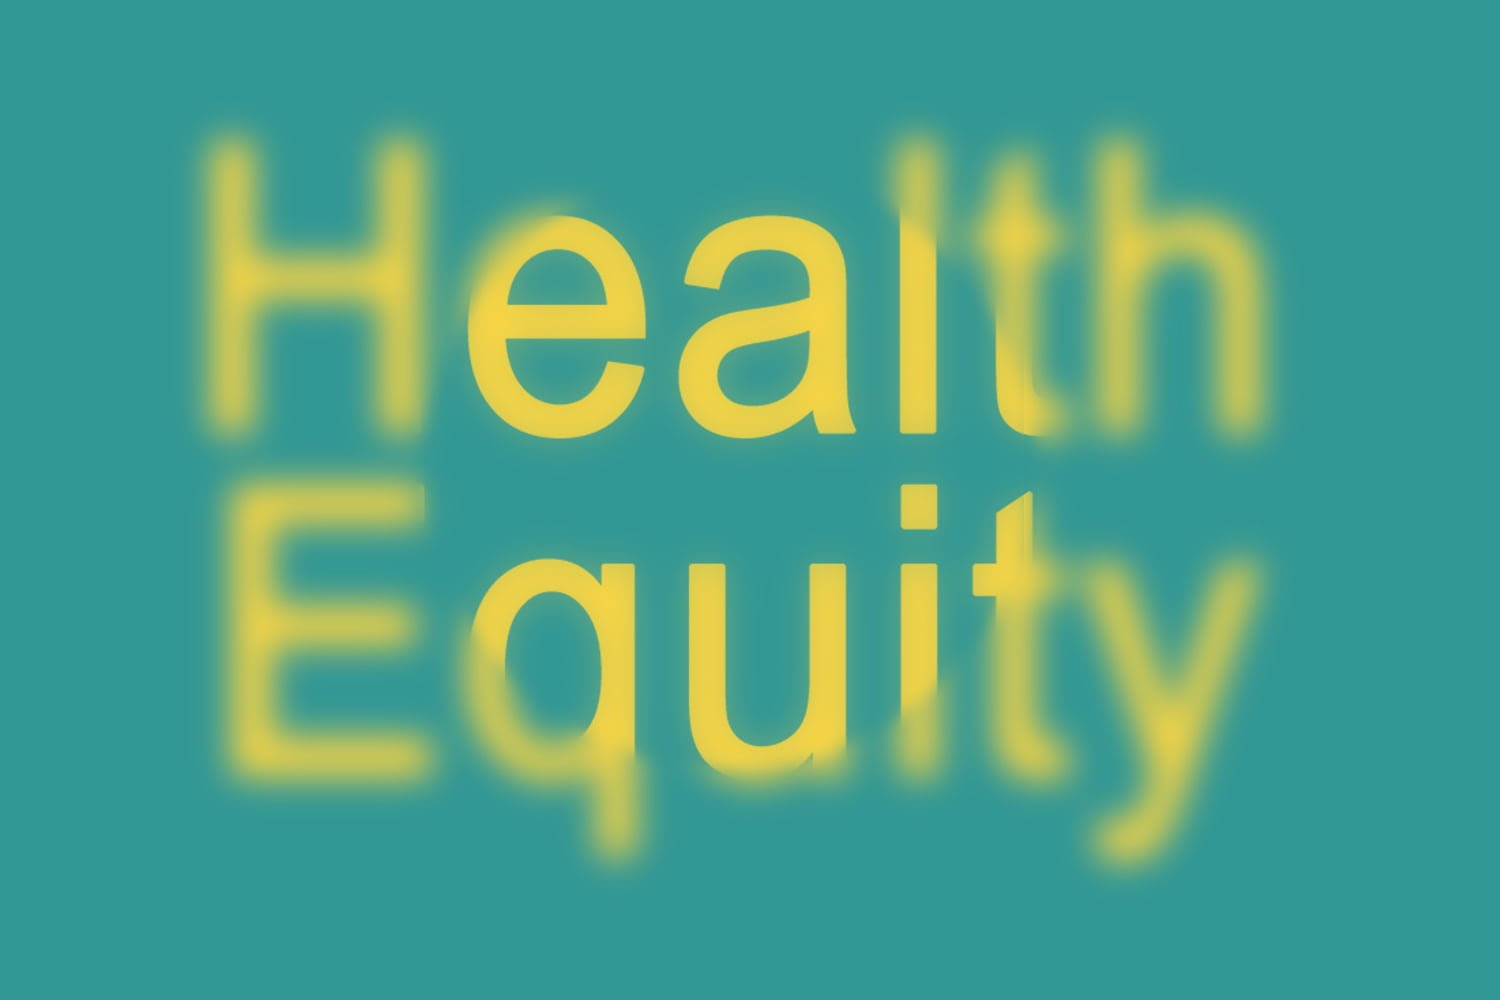 Ahead of 8th national health reform summit where is the focus on ahead of 8th national health reform summit where is the focus on health equity in malvernweather Image collections